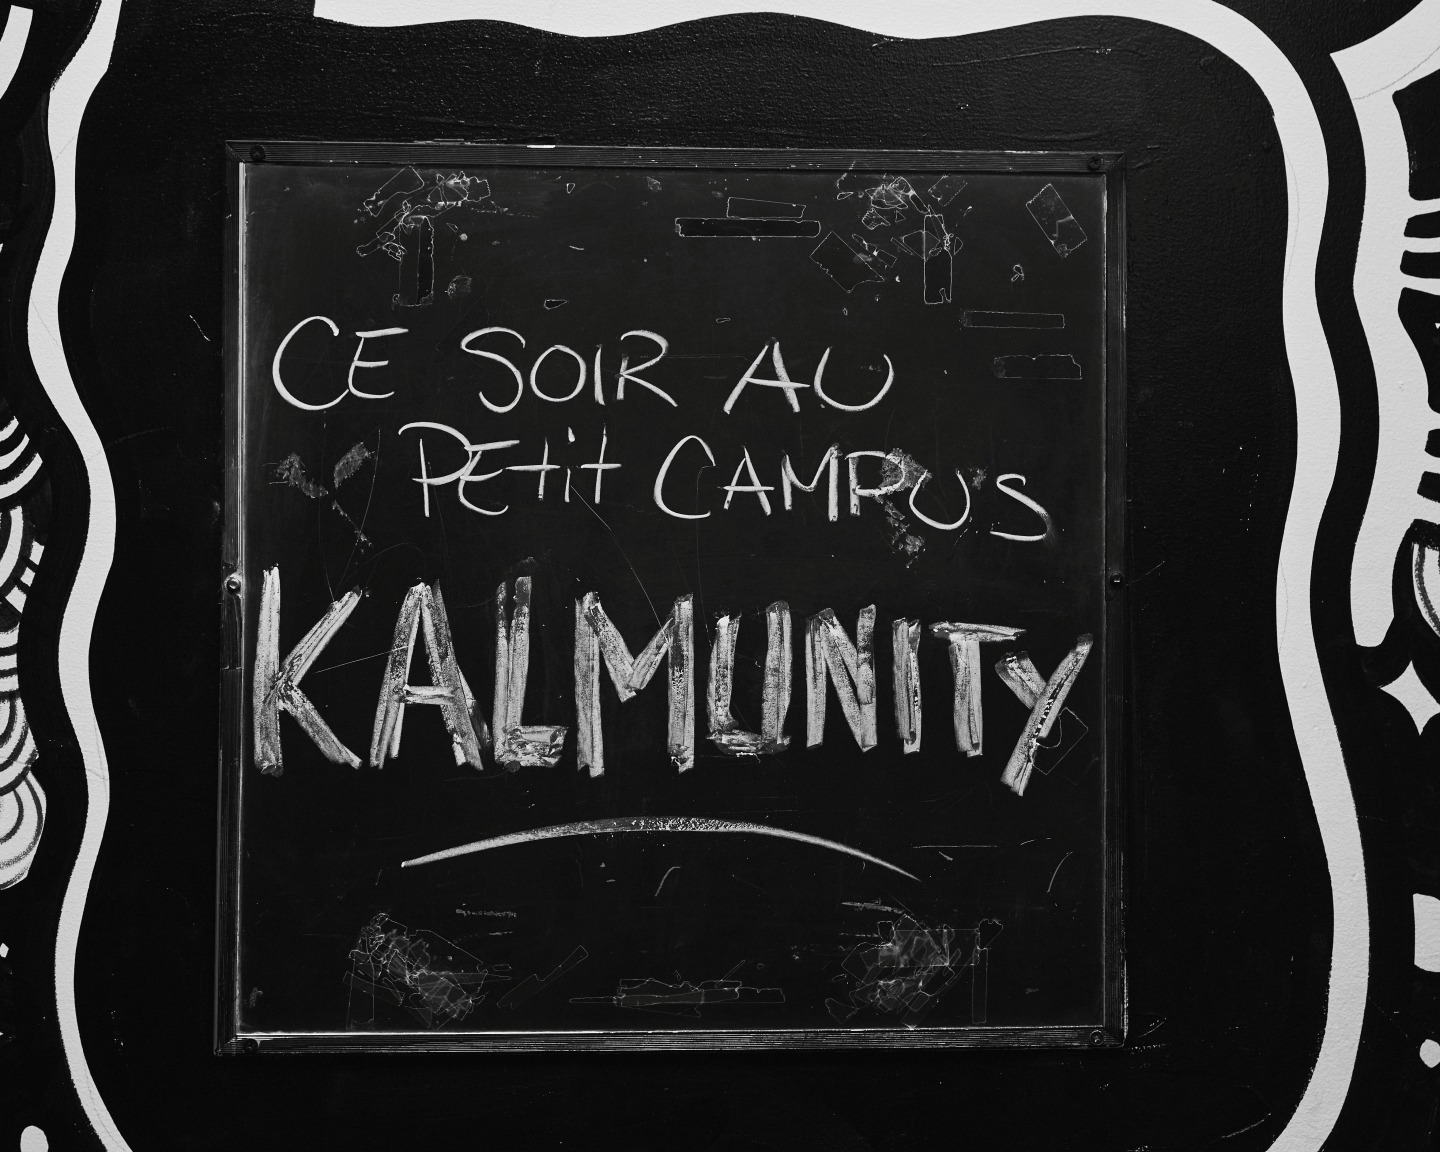 The crucial 15 year legacy of Montreal improv collective, Kalmunity